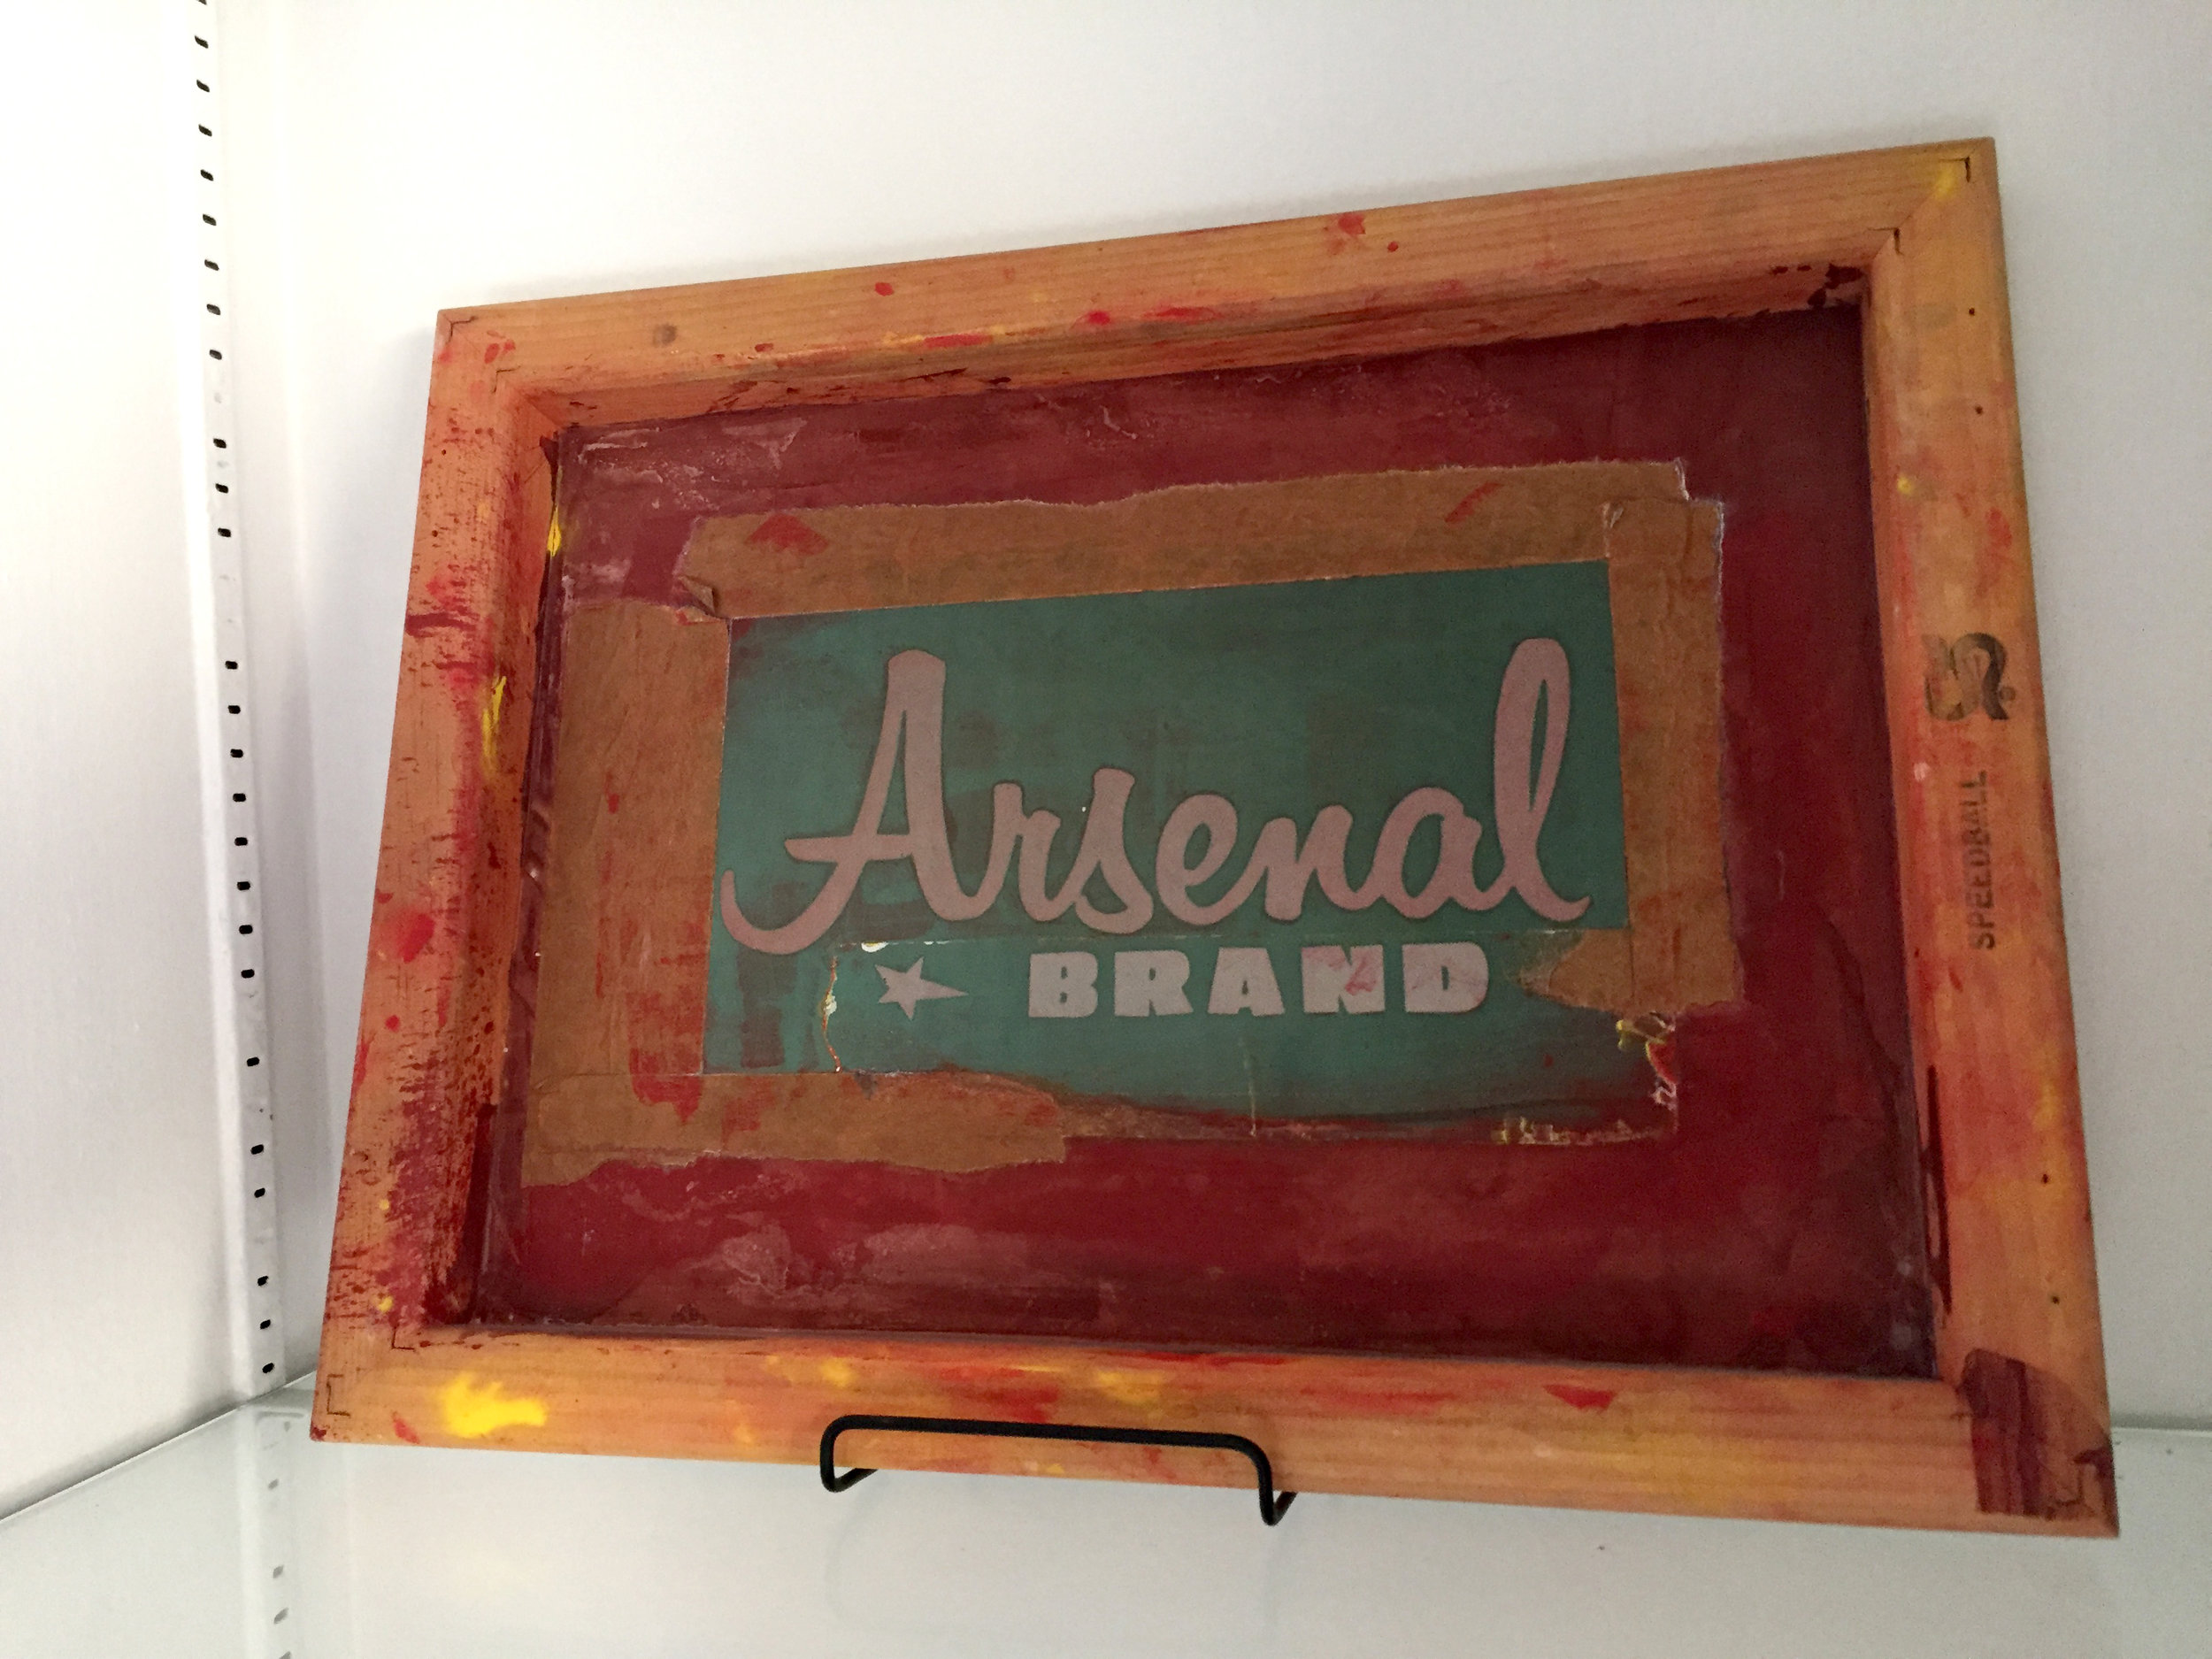 Arsenal-office-10